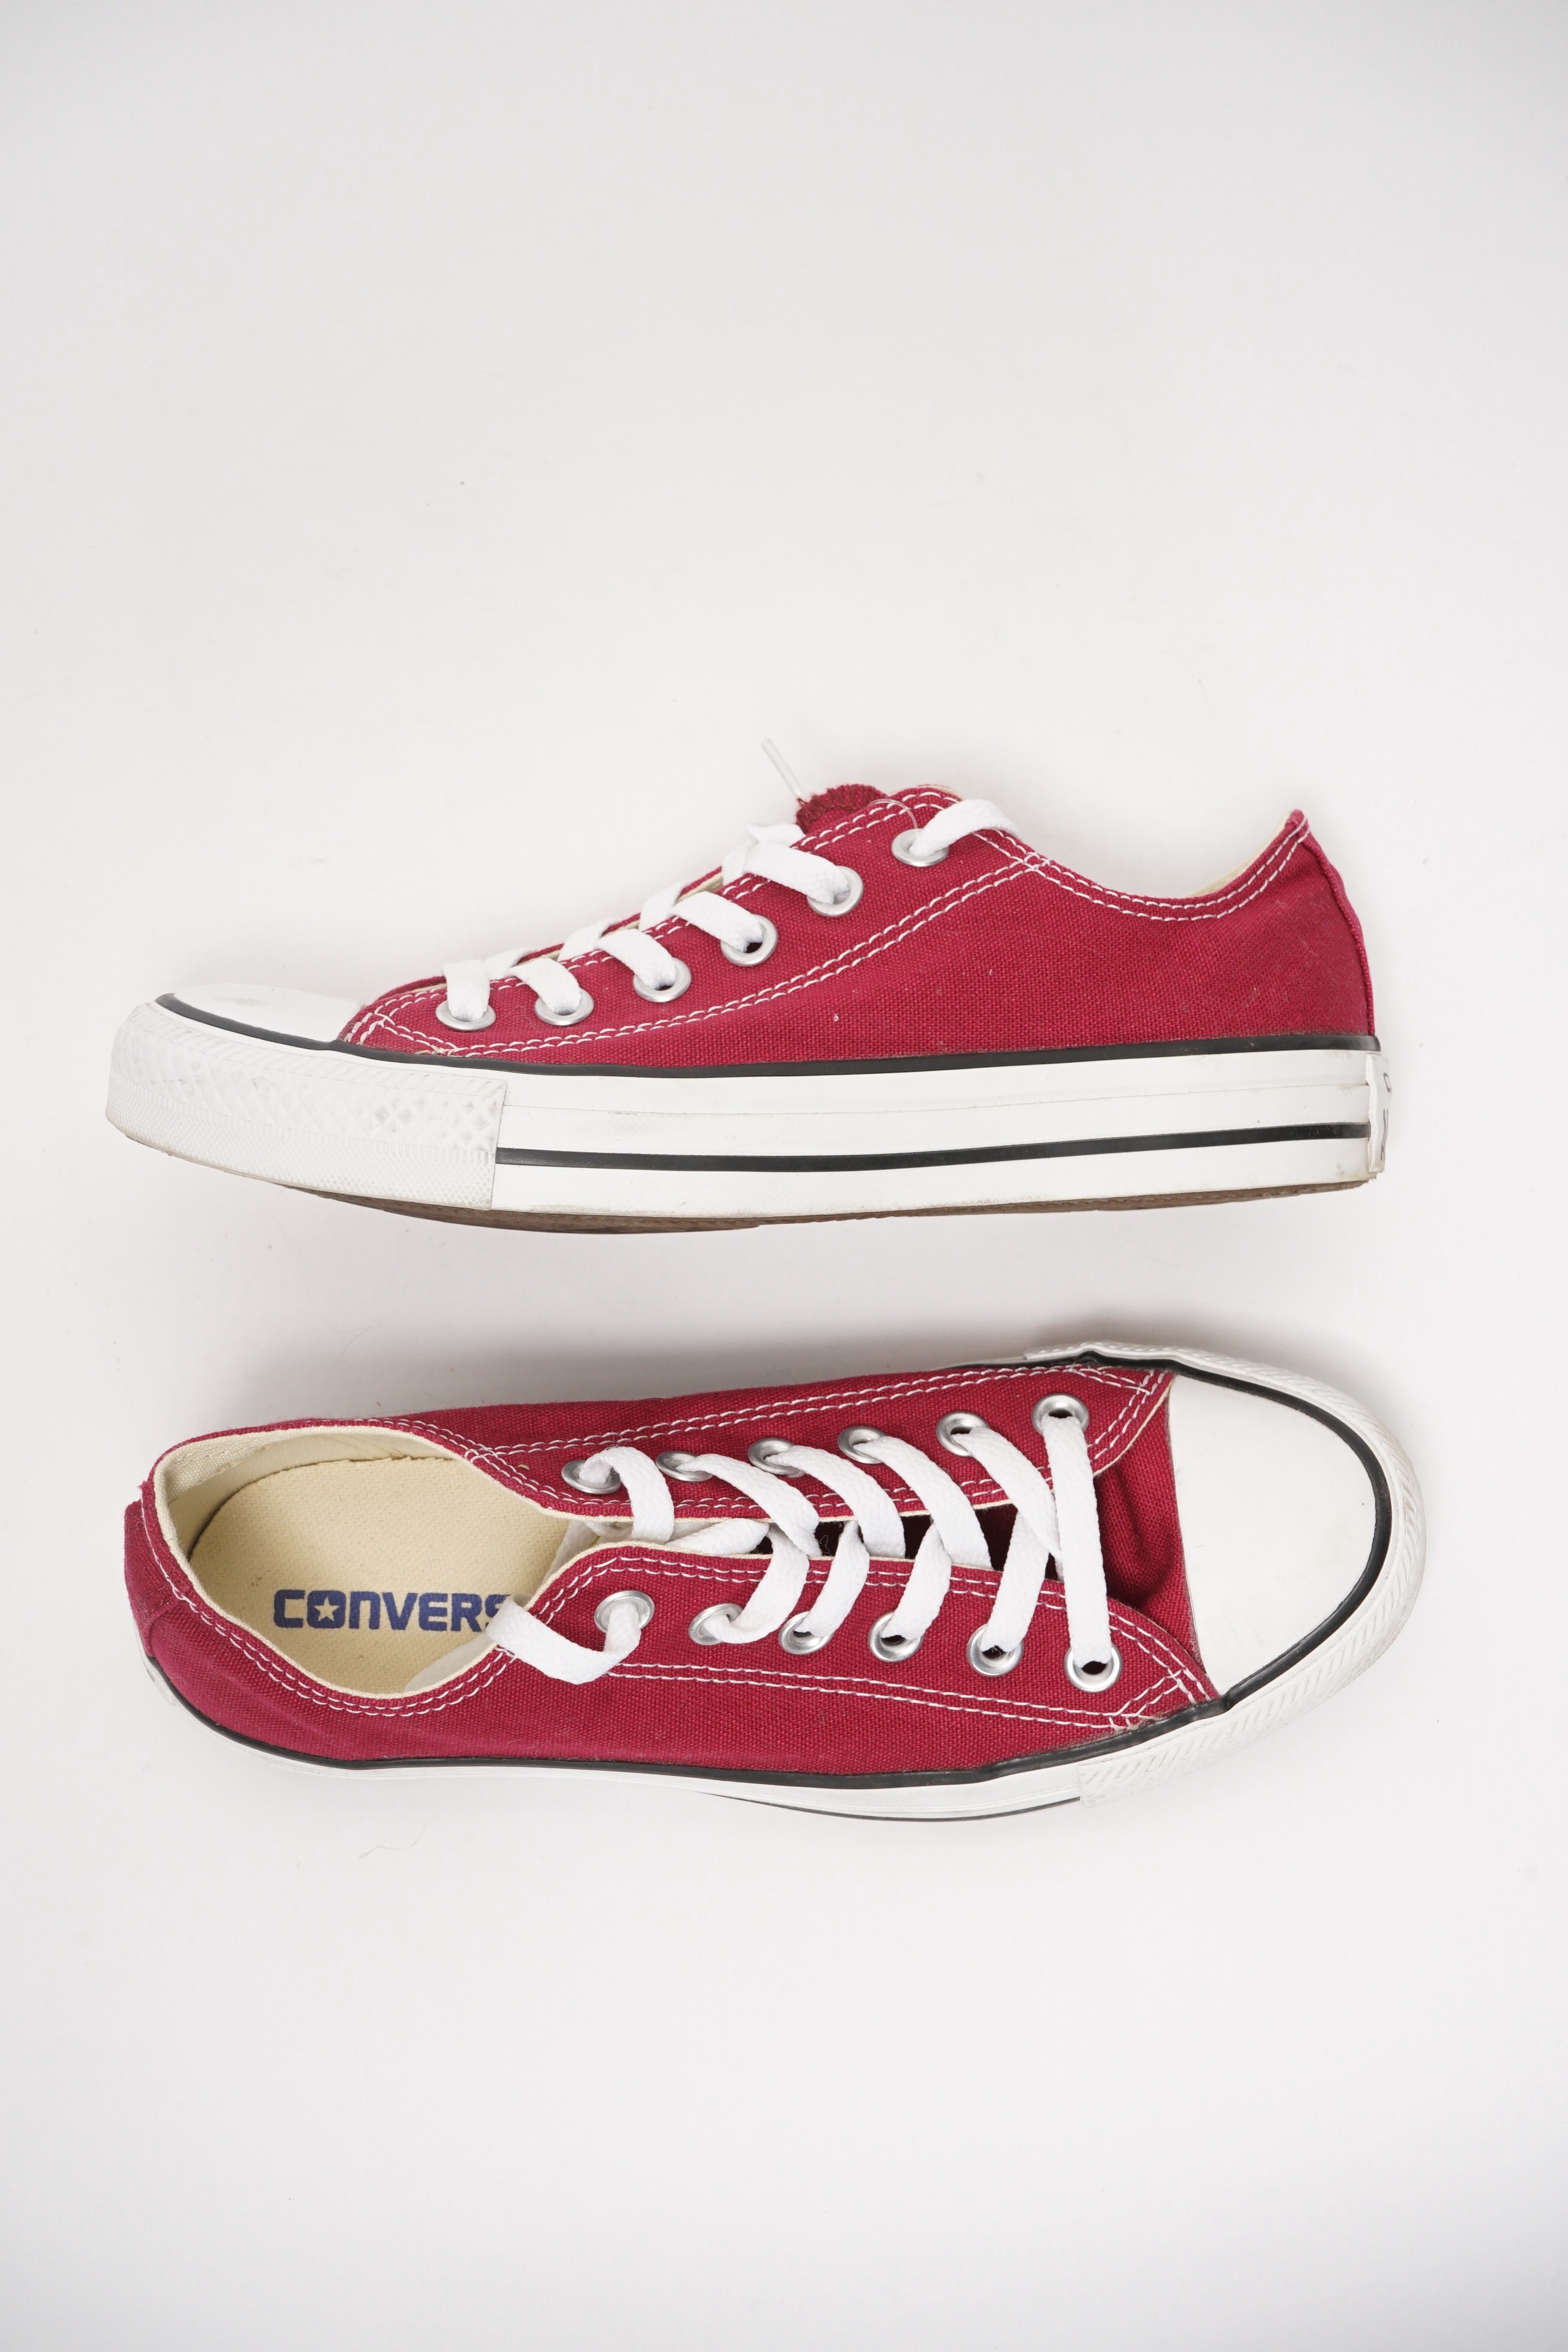 Converse Sneakers Rot Gr.37.5